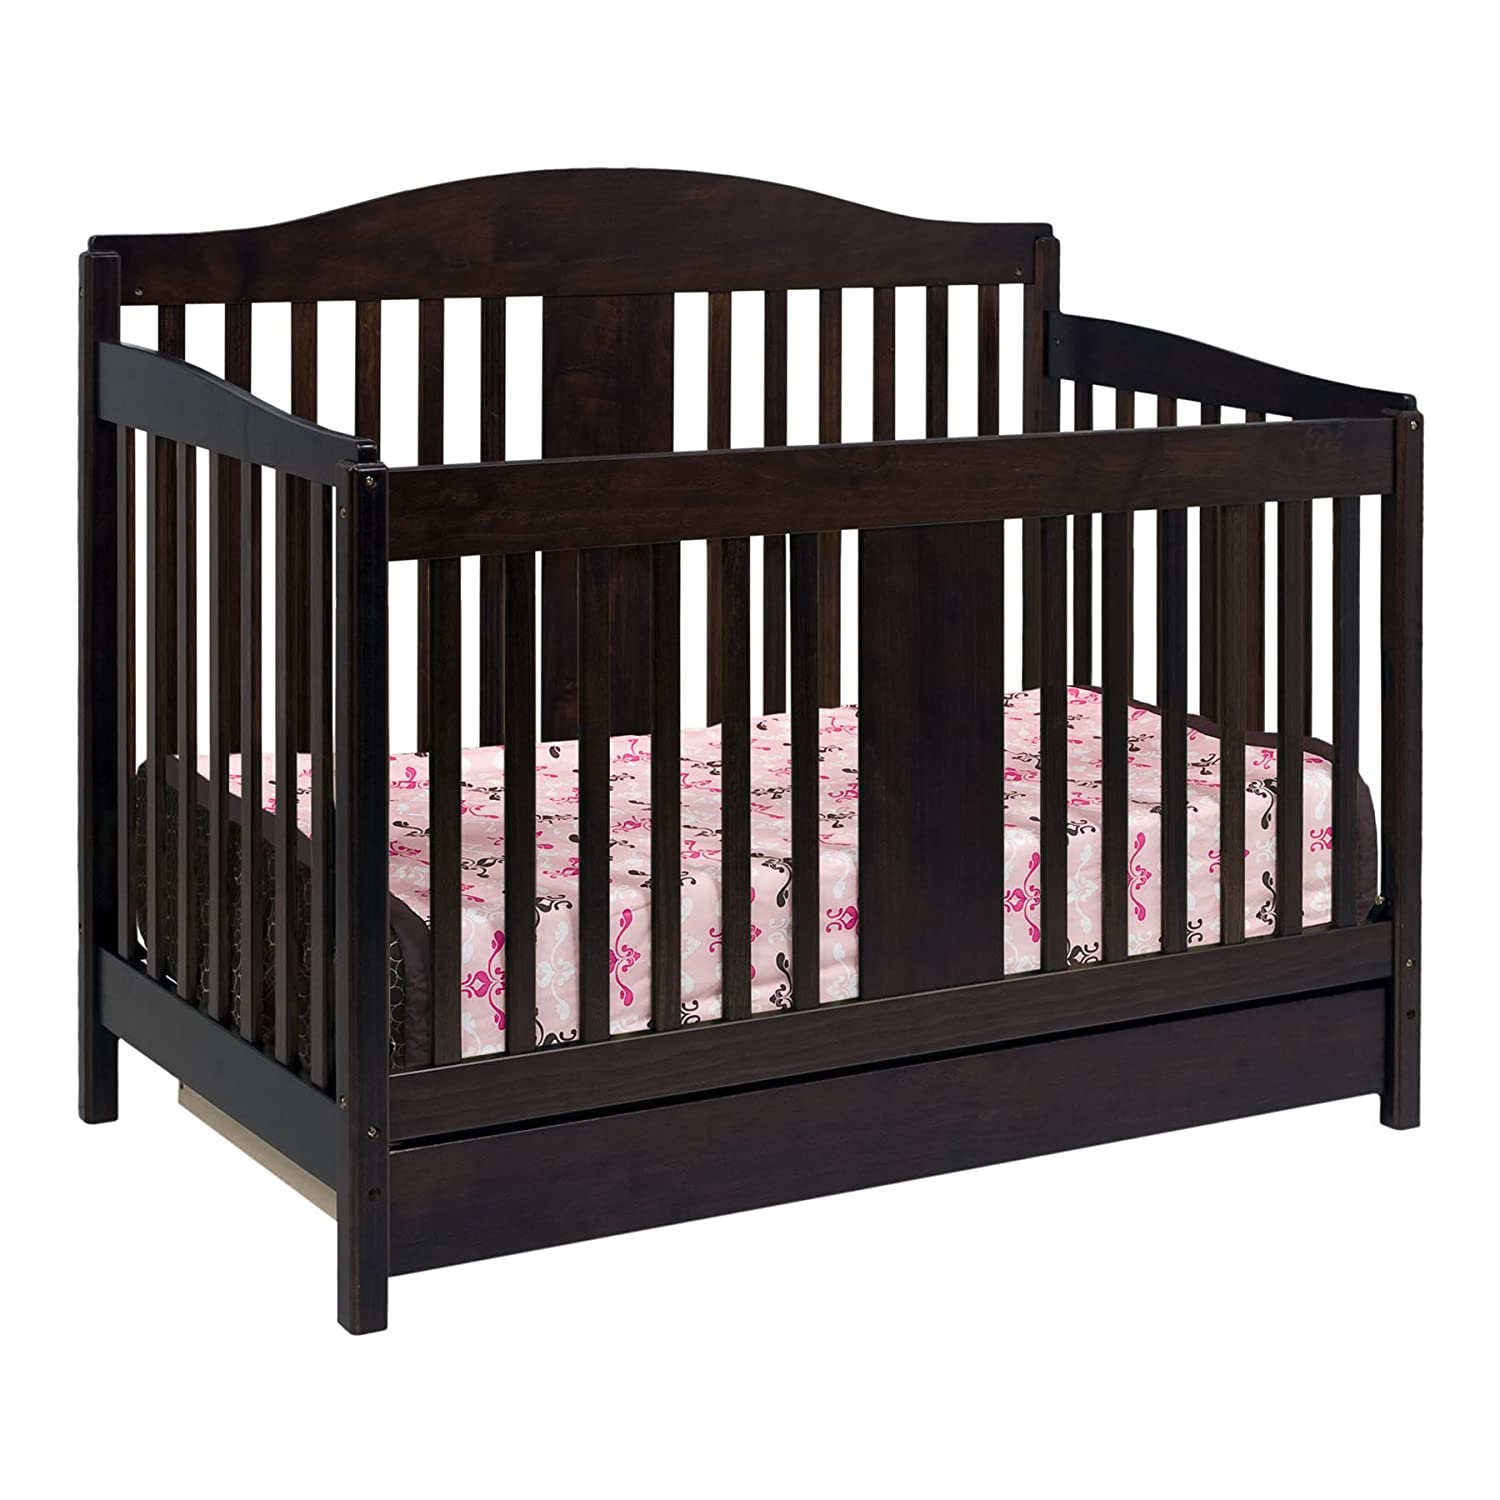 Toddler bed rails for convertible cribs - Amazon Com Davinci Richmond 4 In 1 Convertible Crib With Toddler Bed Conversion Kit Espresso Davinci Crib Sets Baby